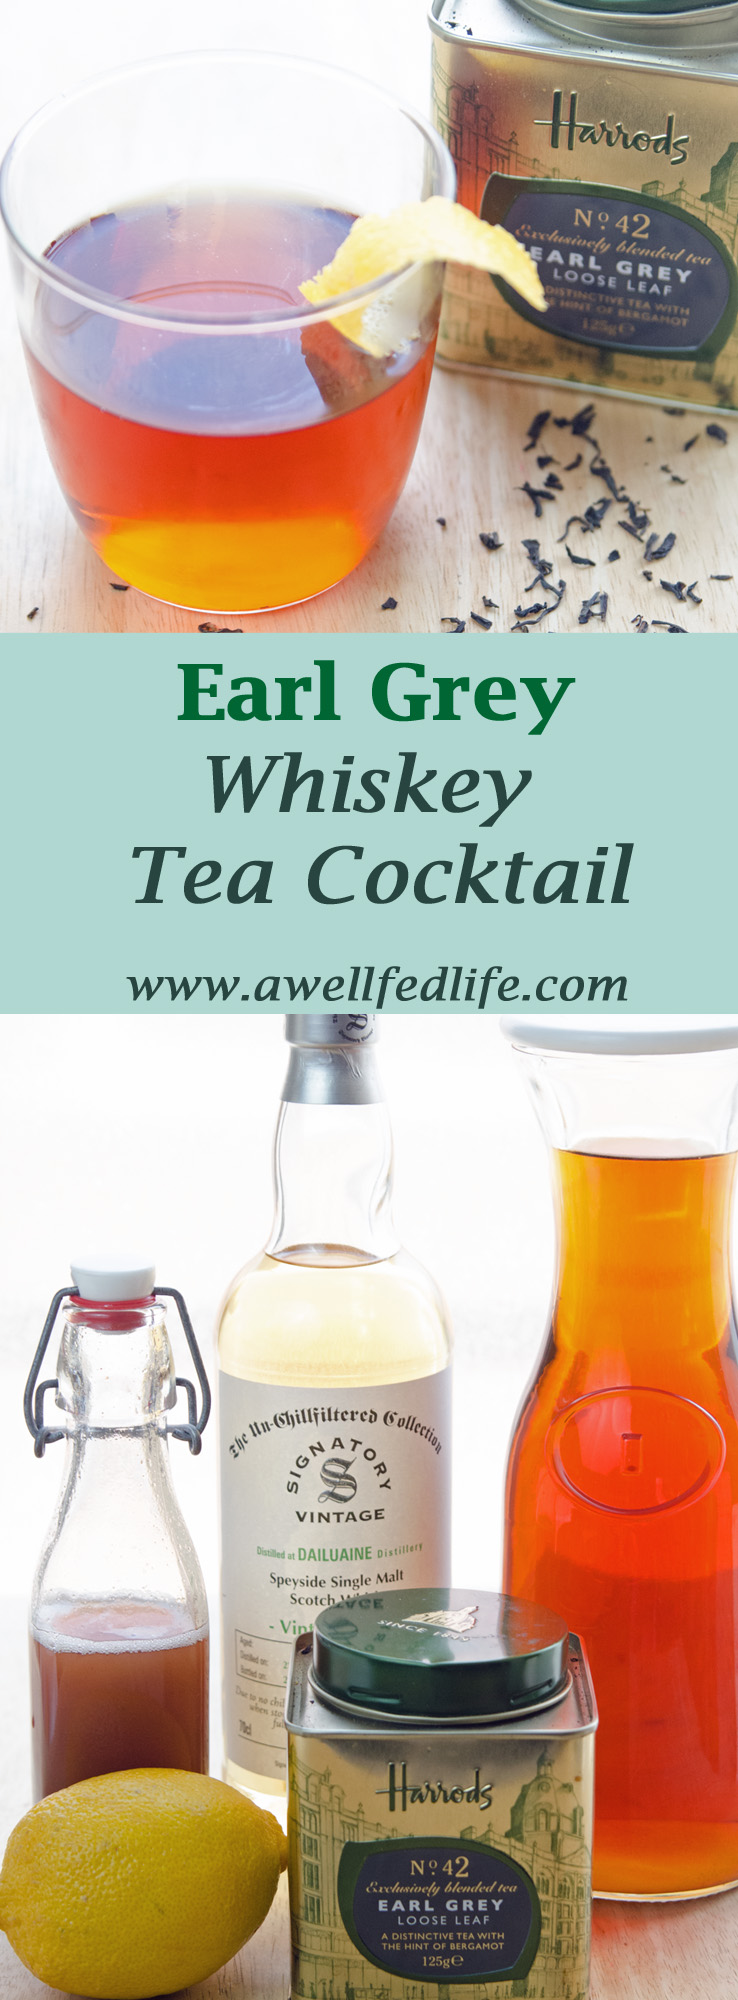 Earl Grey Cocktail Pinterest